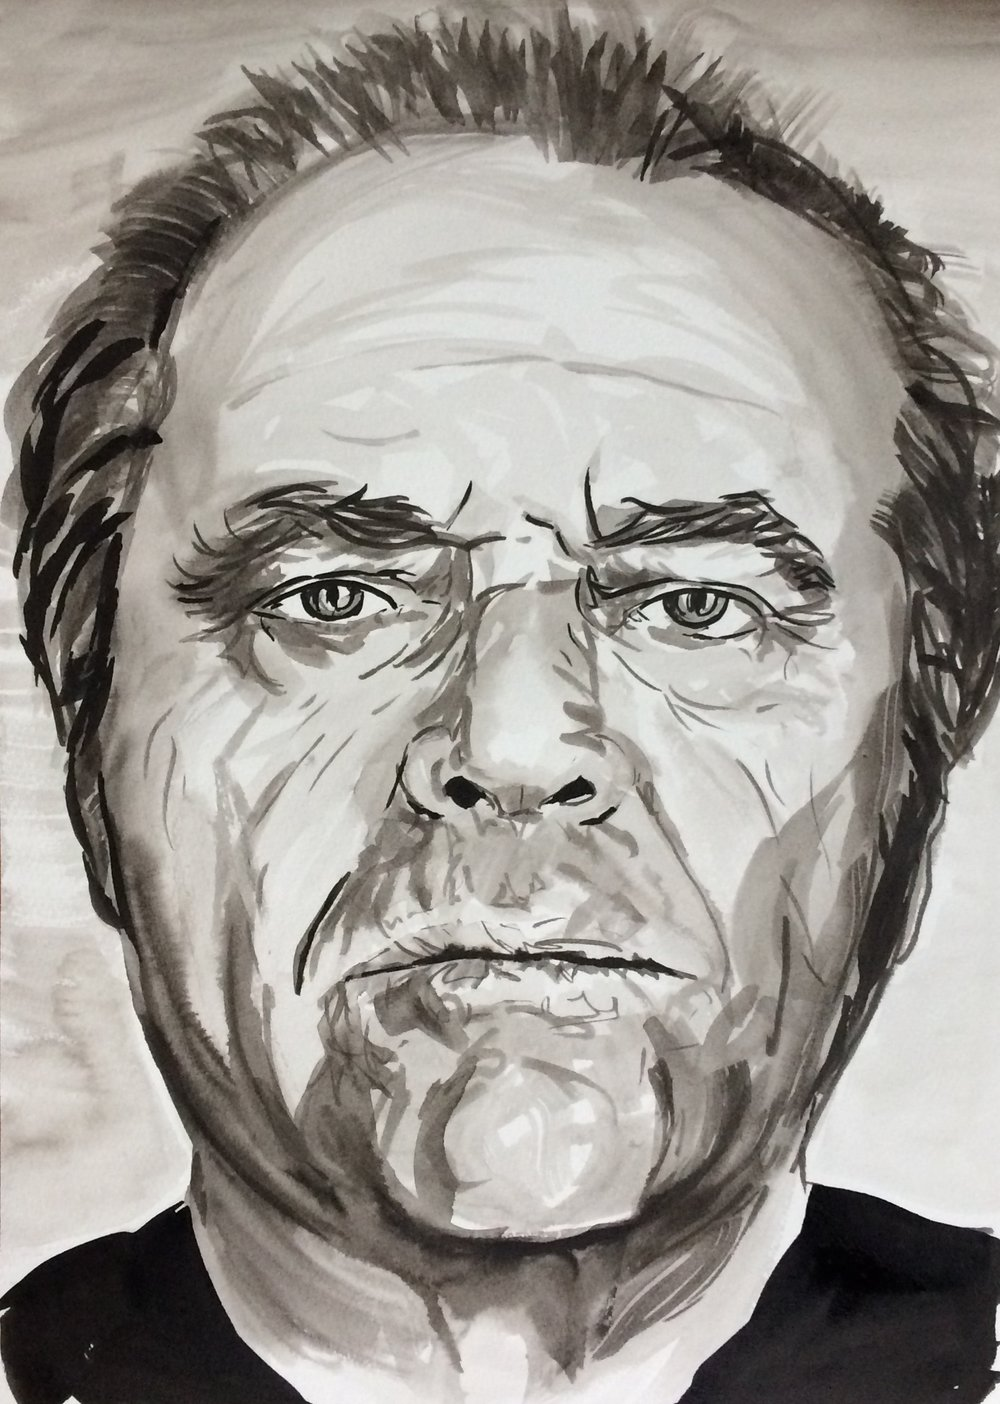 Jack. Indian Ink on watercolor paper, (230g/m2), A3 (42x29,7 cm). Available.